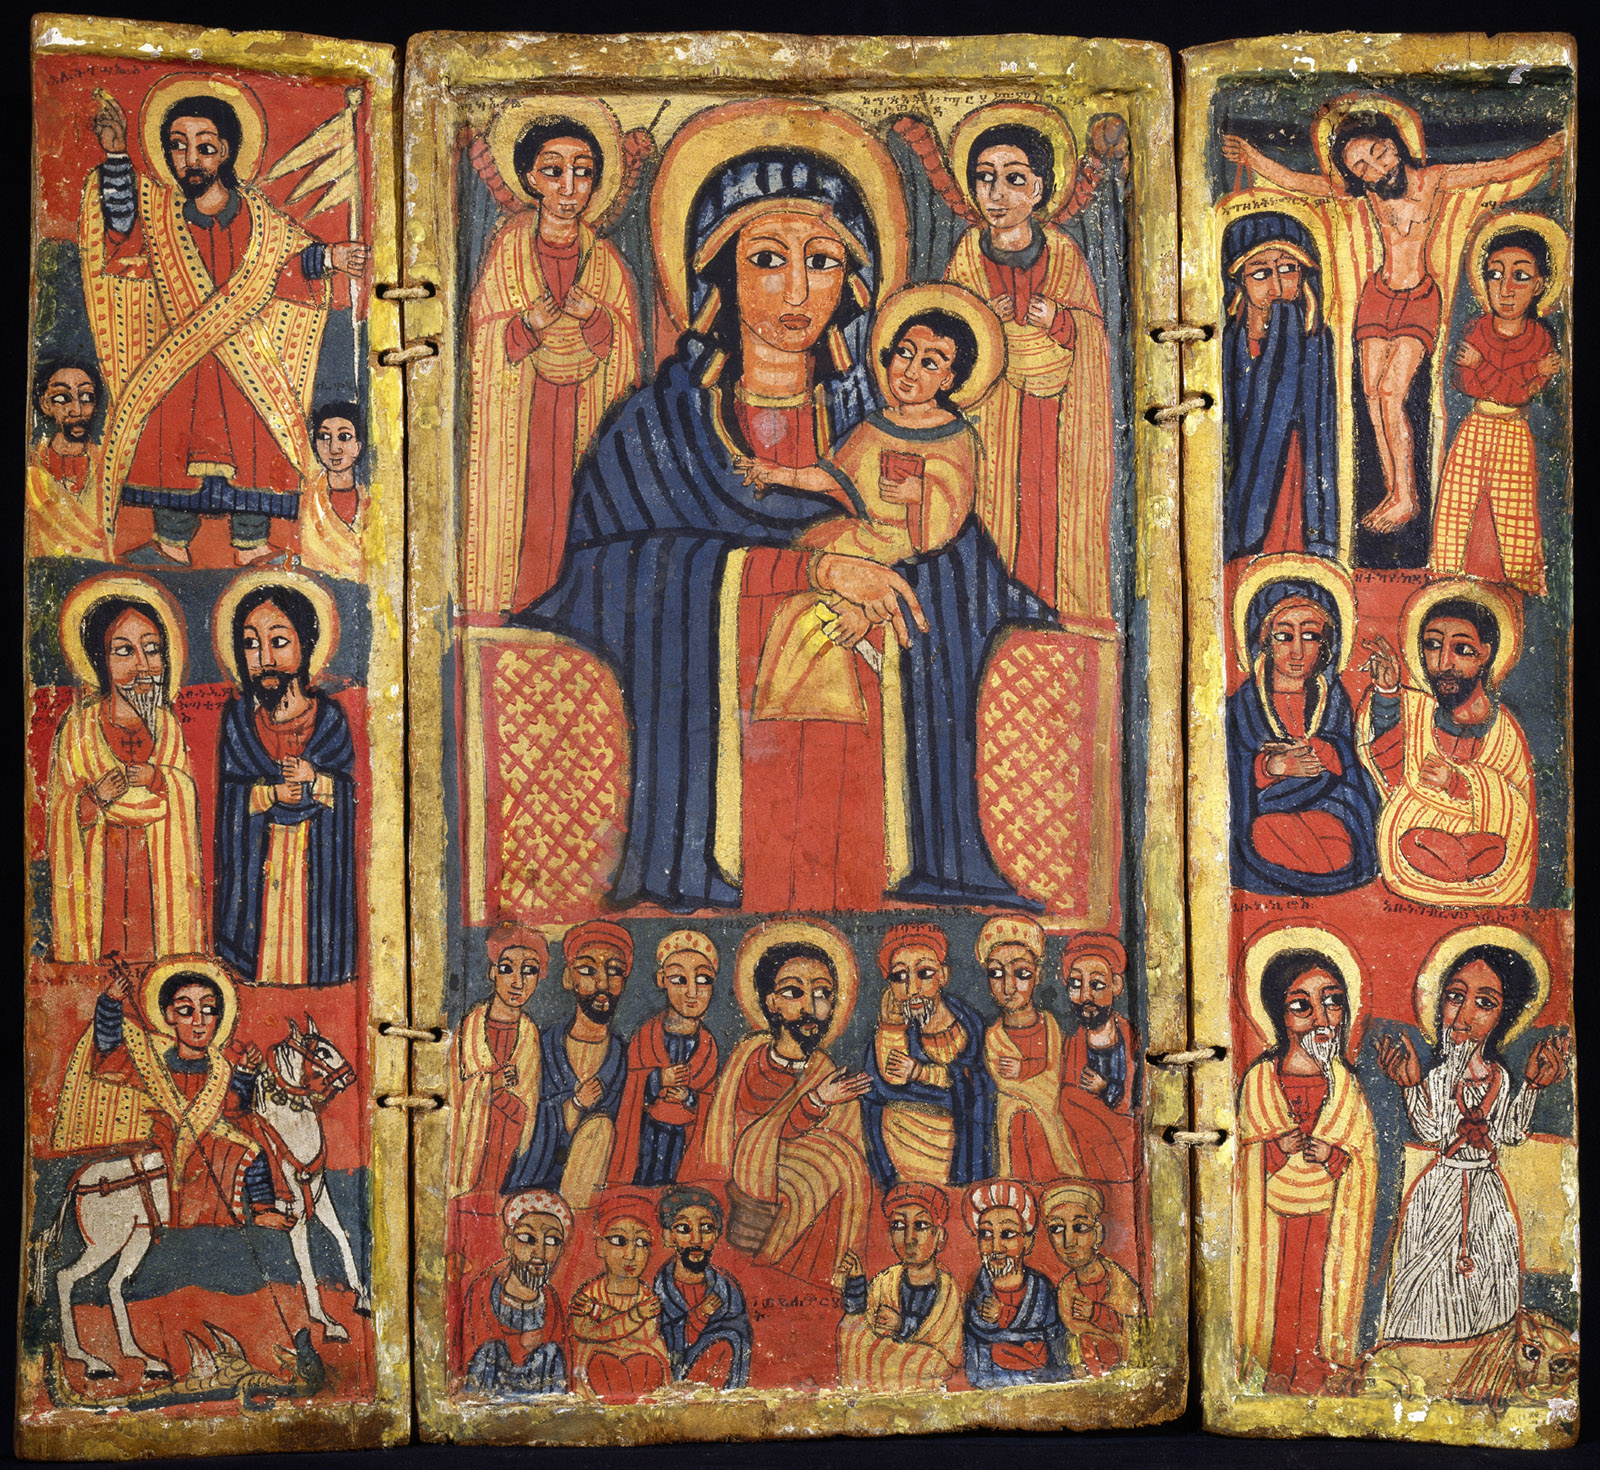 A triptych depicting Jesus, the Apostles, and Saint George and the dragon; Mary with Jesus and the Last Supper; and crucified Jesus and the Apostles, Ethiopia